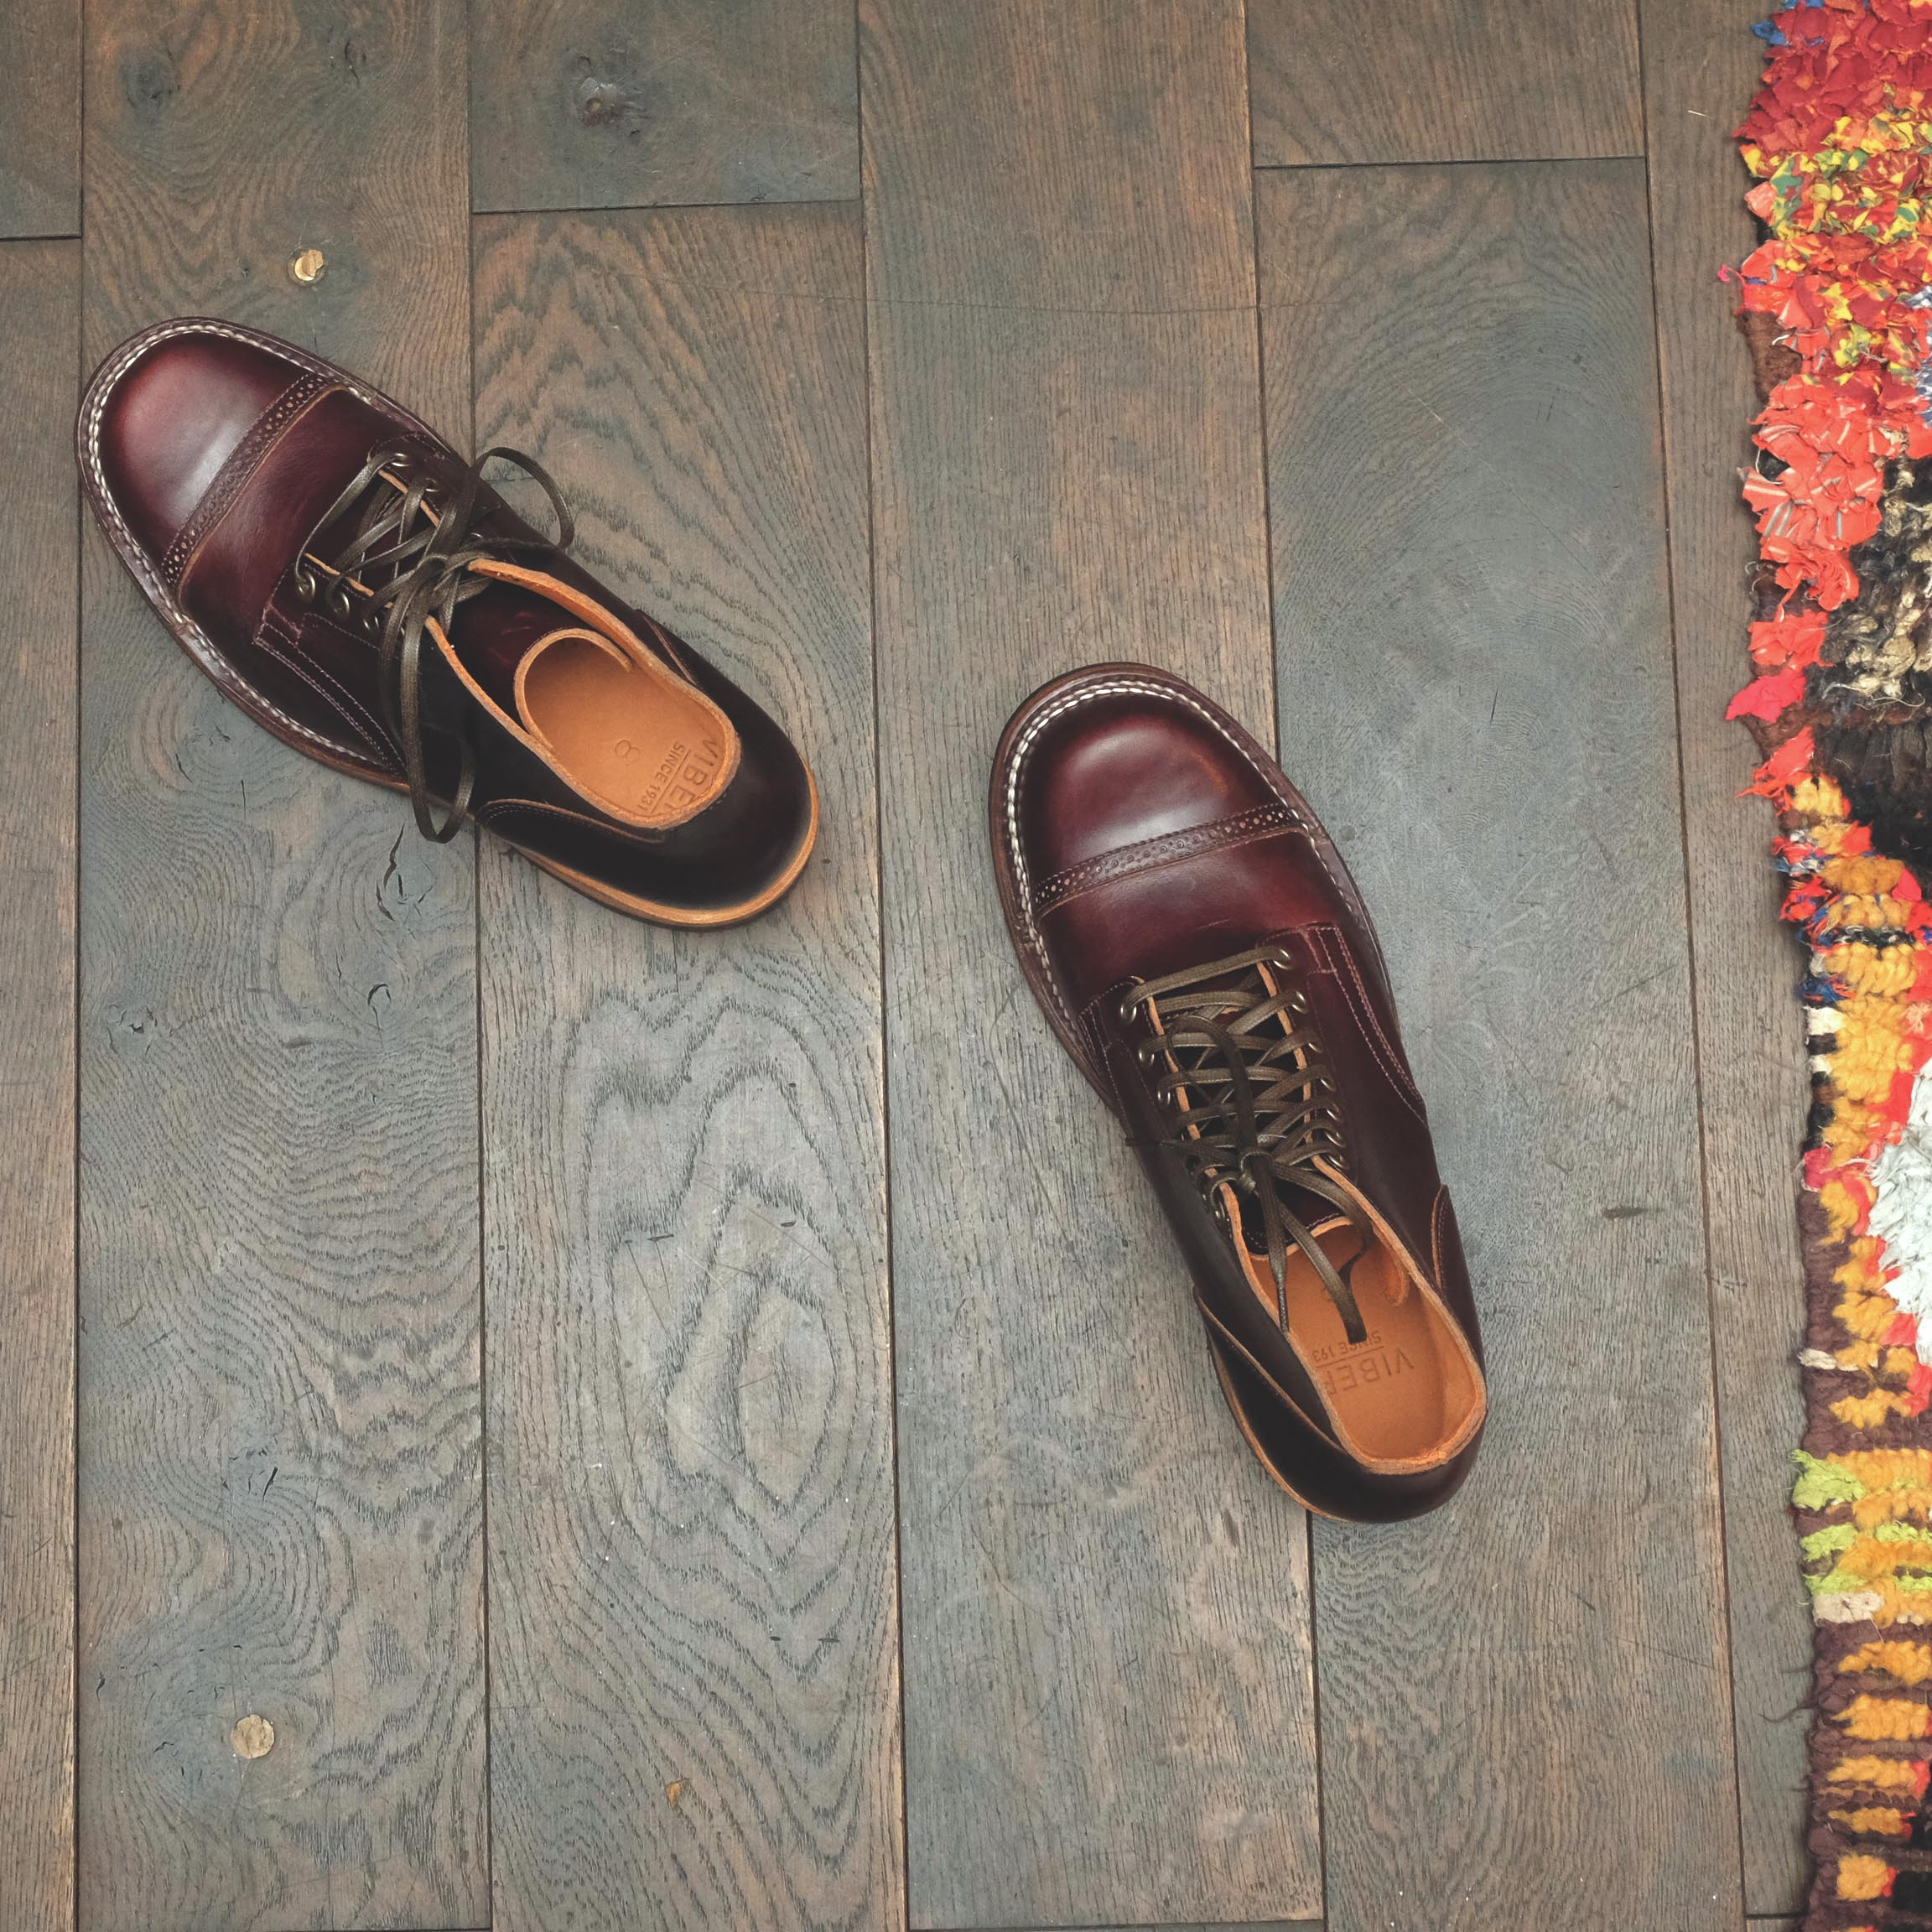 viberg-1940-serviceboot-oxblood-red-1